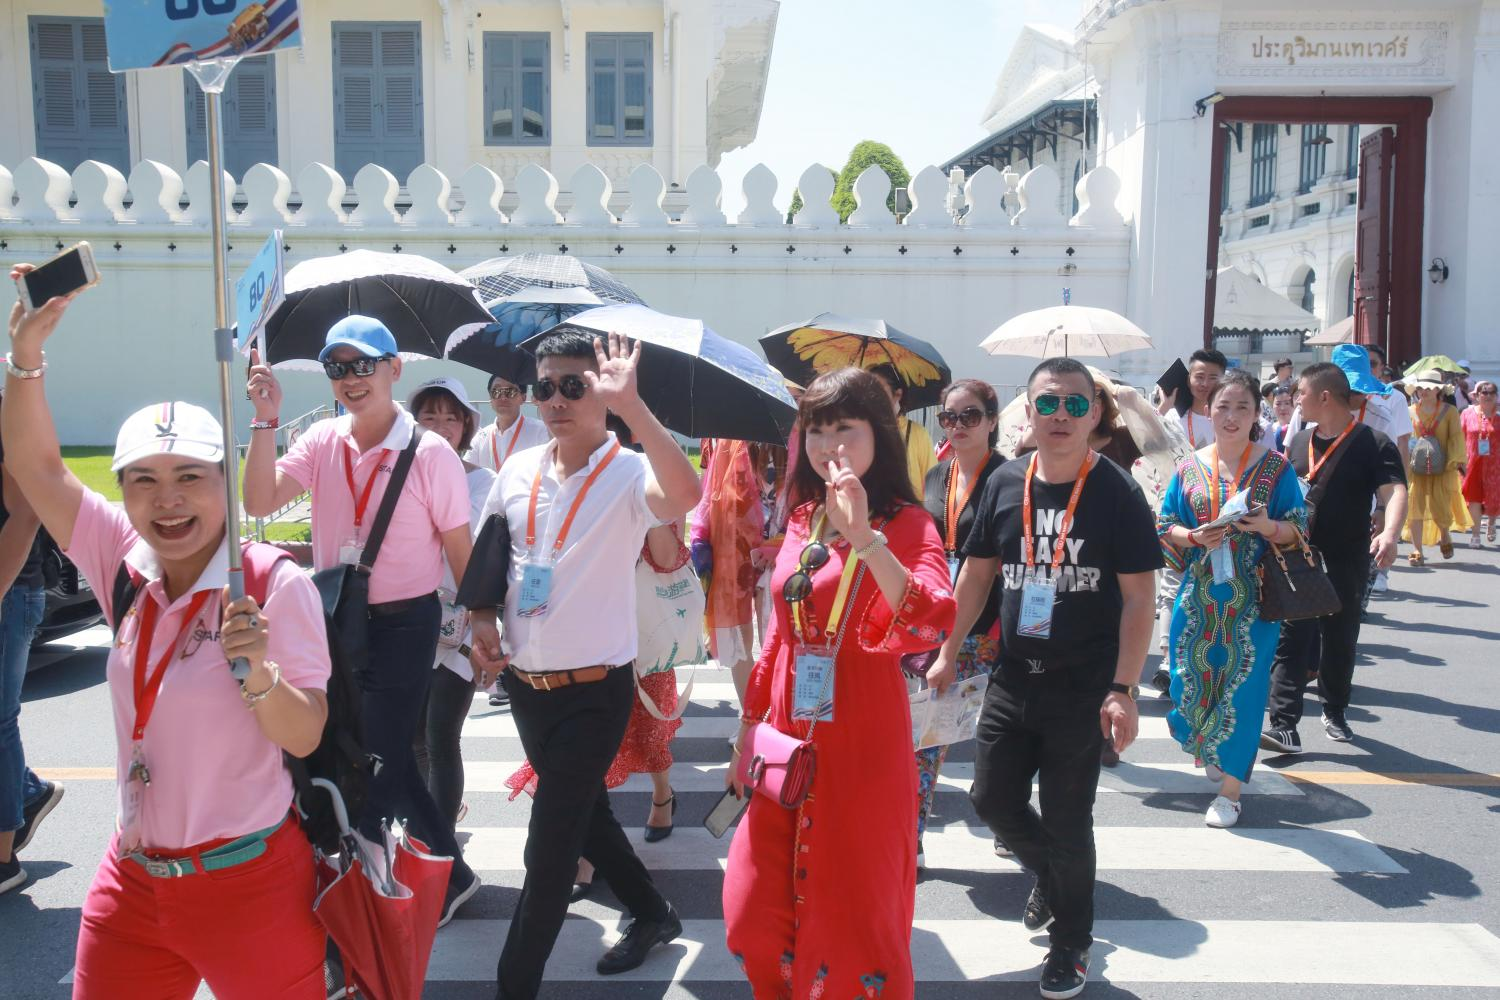 A tour guide leads Chinese tourists from the Grand Palace in 2018. (Bangkok Post file photo)